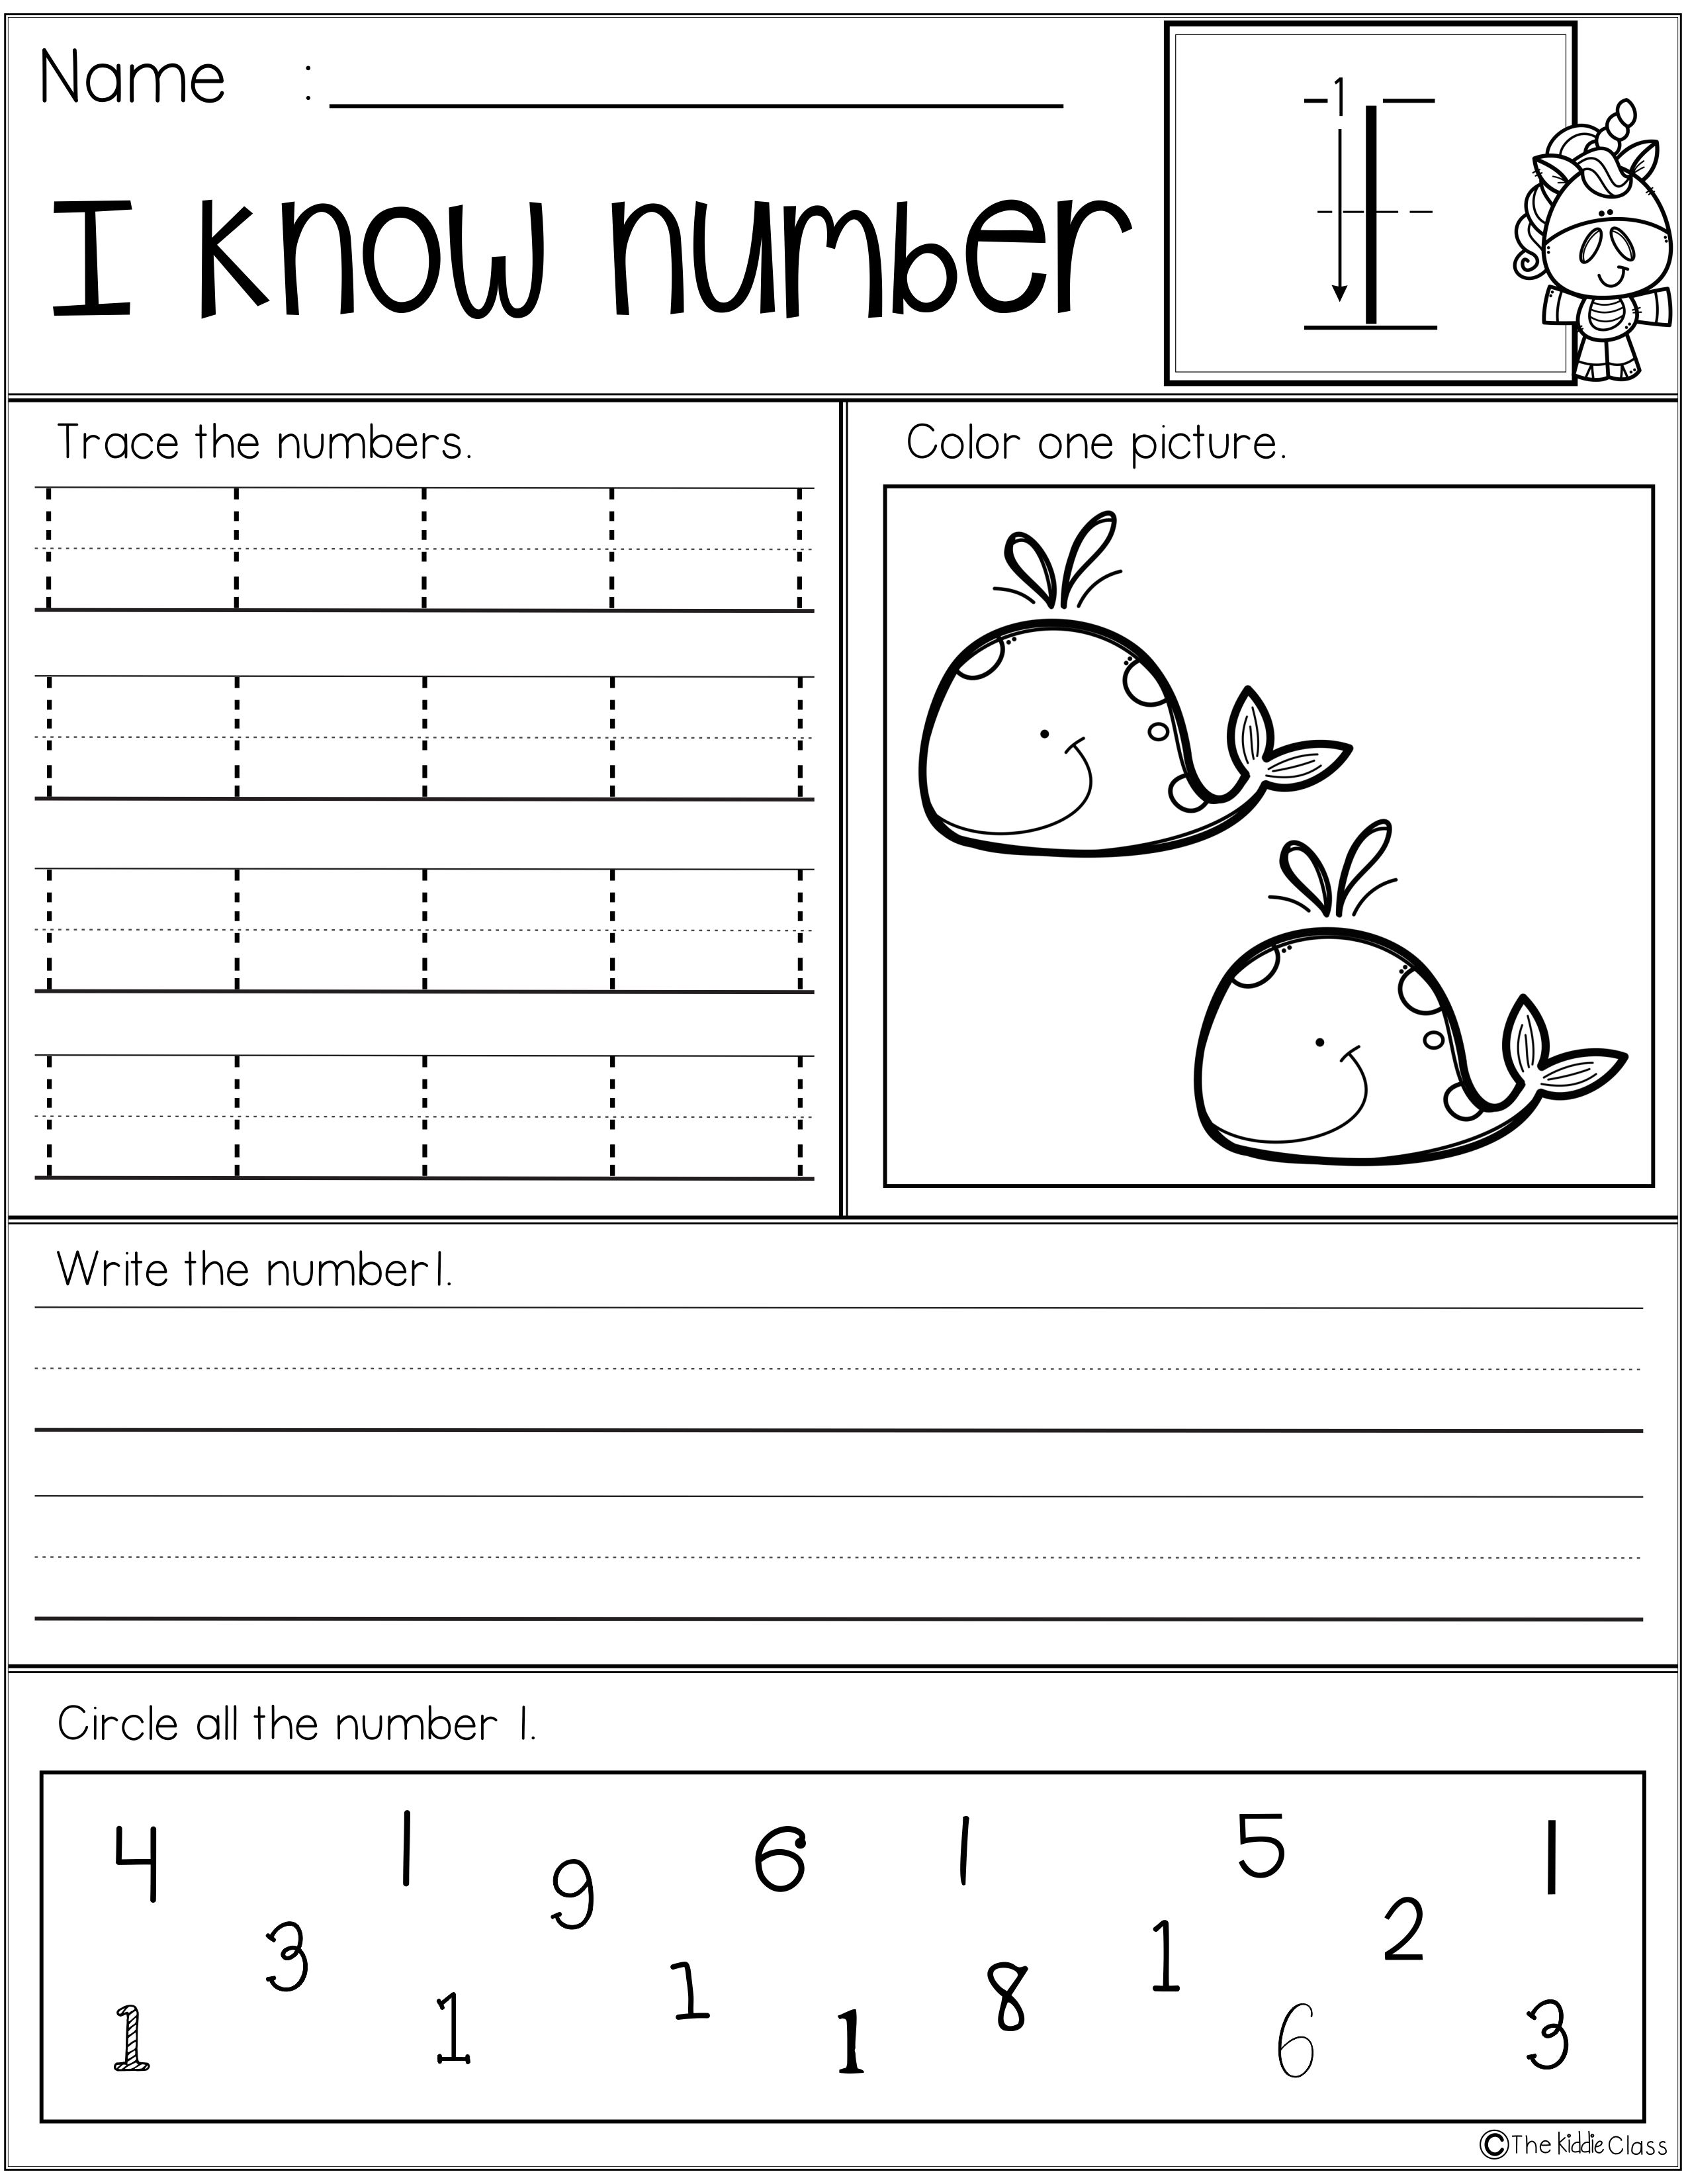 Free Number Practice Printables There Are 3 Printable Pages Of Number Practice In This Packet Students Use A Variety Of Skills With Pendidikan Membaca Kartu [ 3300 x 2551 Pixel ]